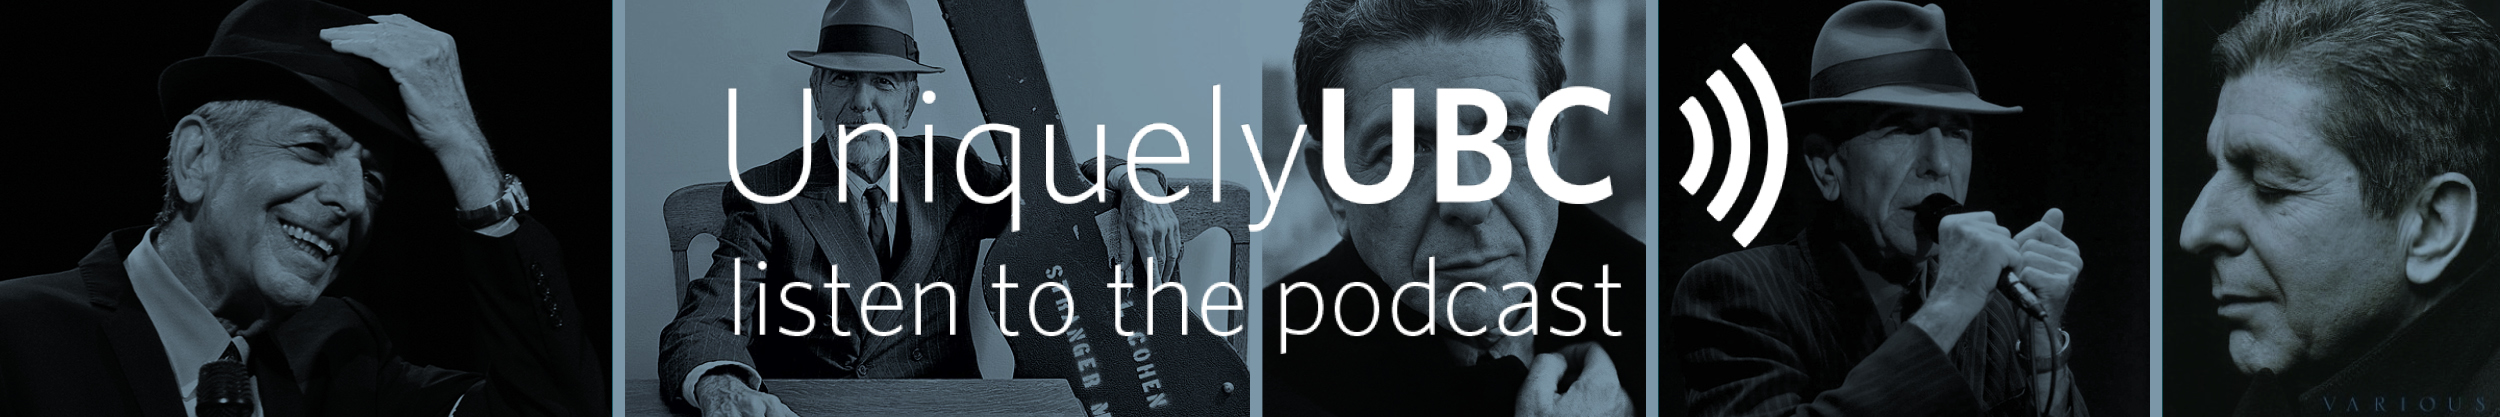 uubc-uno-langmann-podcast-banner3